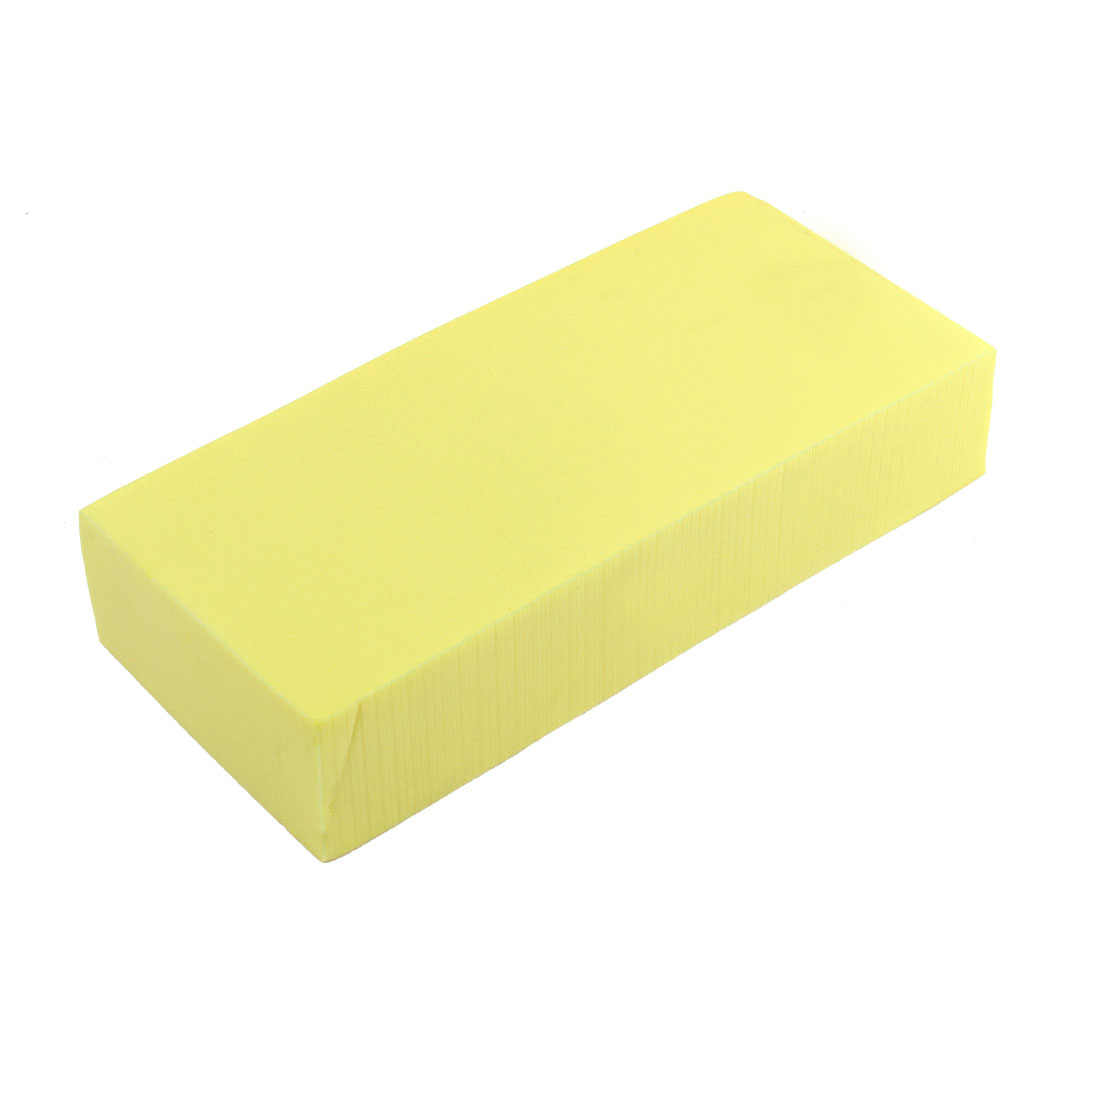 Home Car Cleaning Tool Yellow Suction Washing Sponge Pad Block 172 x 75 x 35mm